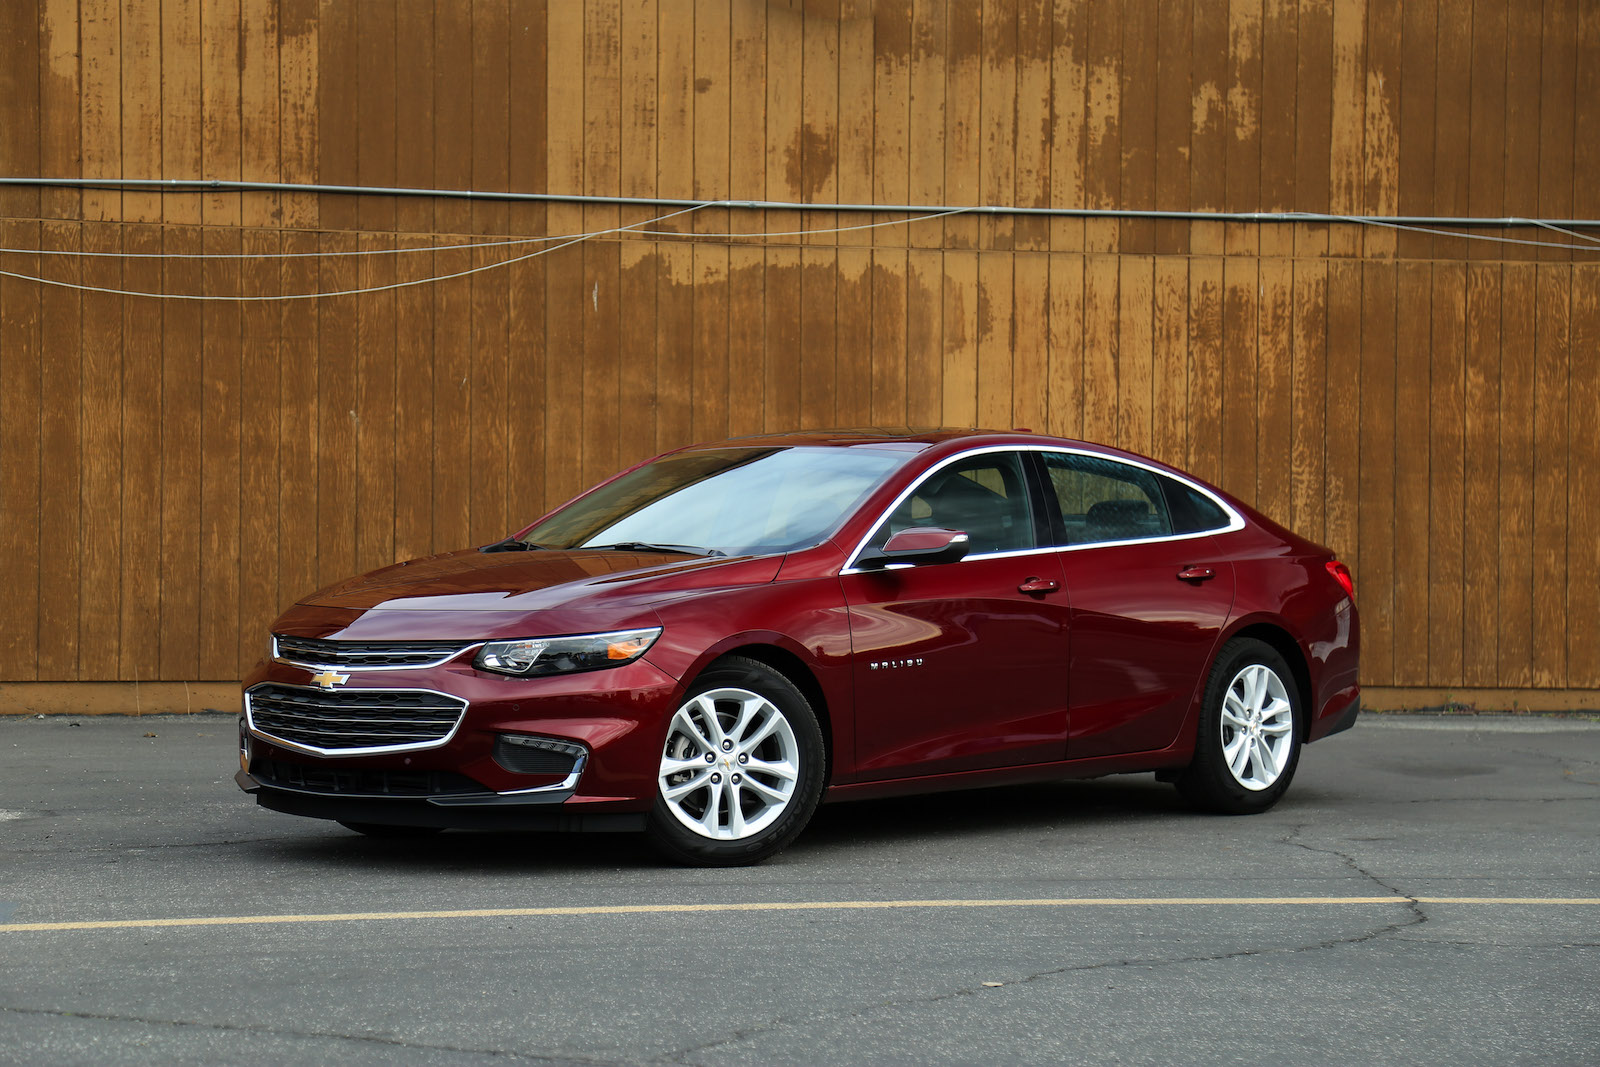 2016 Chevrolet Malibu Review (Canada) - Chevy Malibu Forum ...